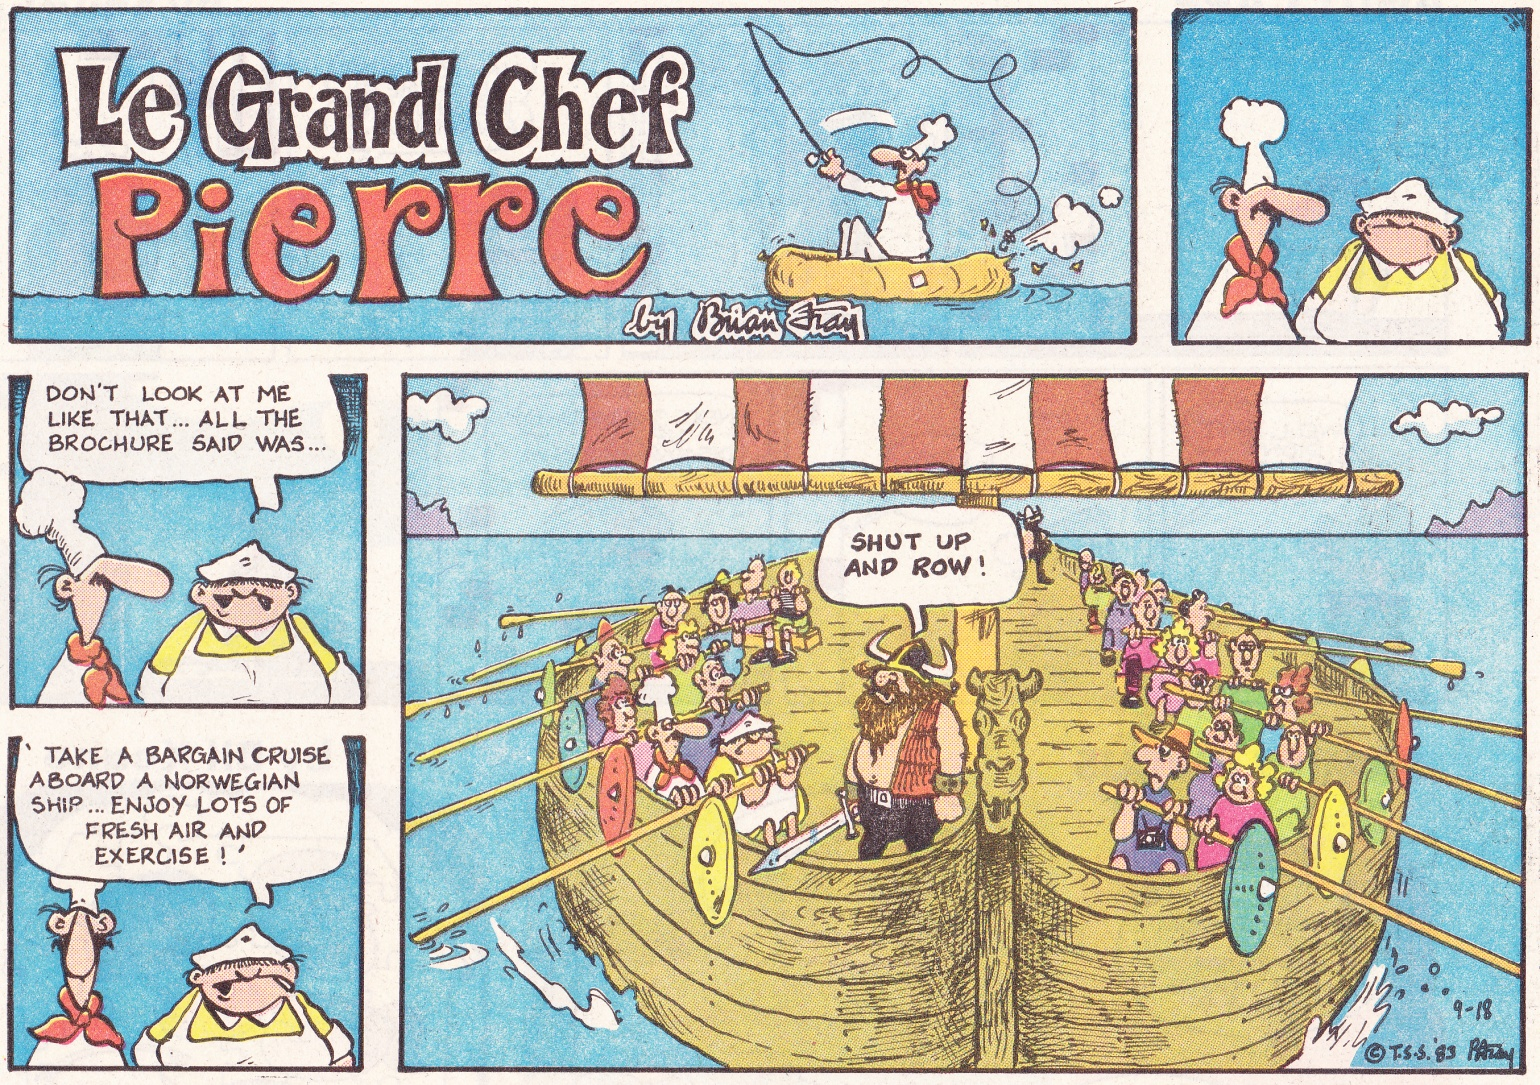 C:\Users\Robert\Documents\CARTOONING ILLUSTRATION ANIMATION\IMAGE CARTOON\IMAGE CARTOON G\GRAND CHEF PIERRE [LE], Tor Star, 18 Sept 1983.jpg